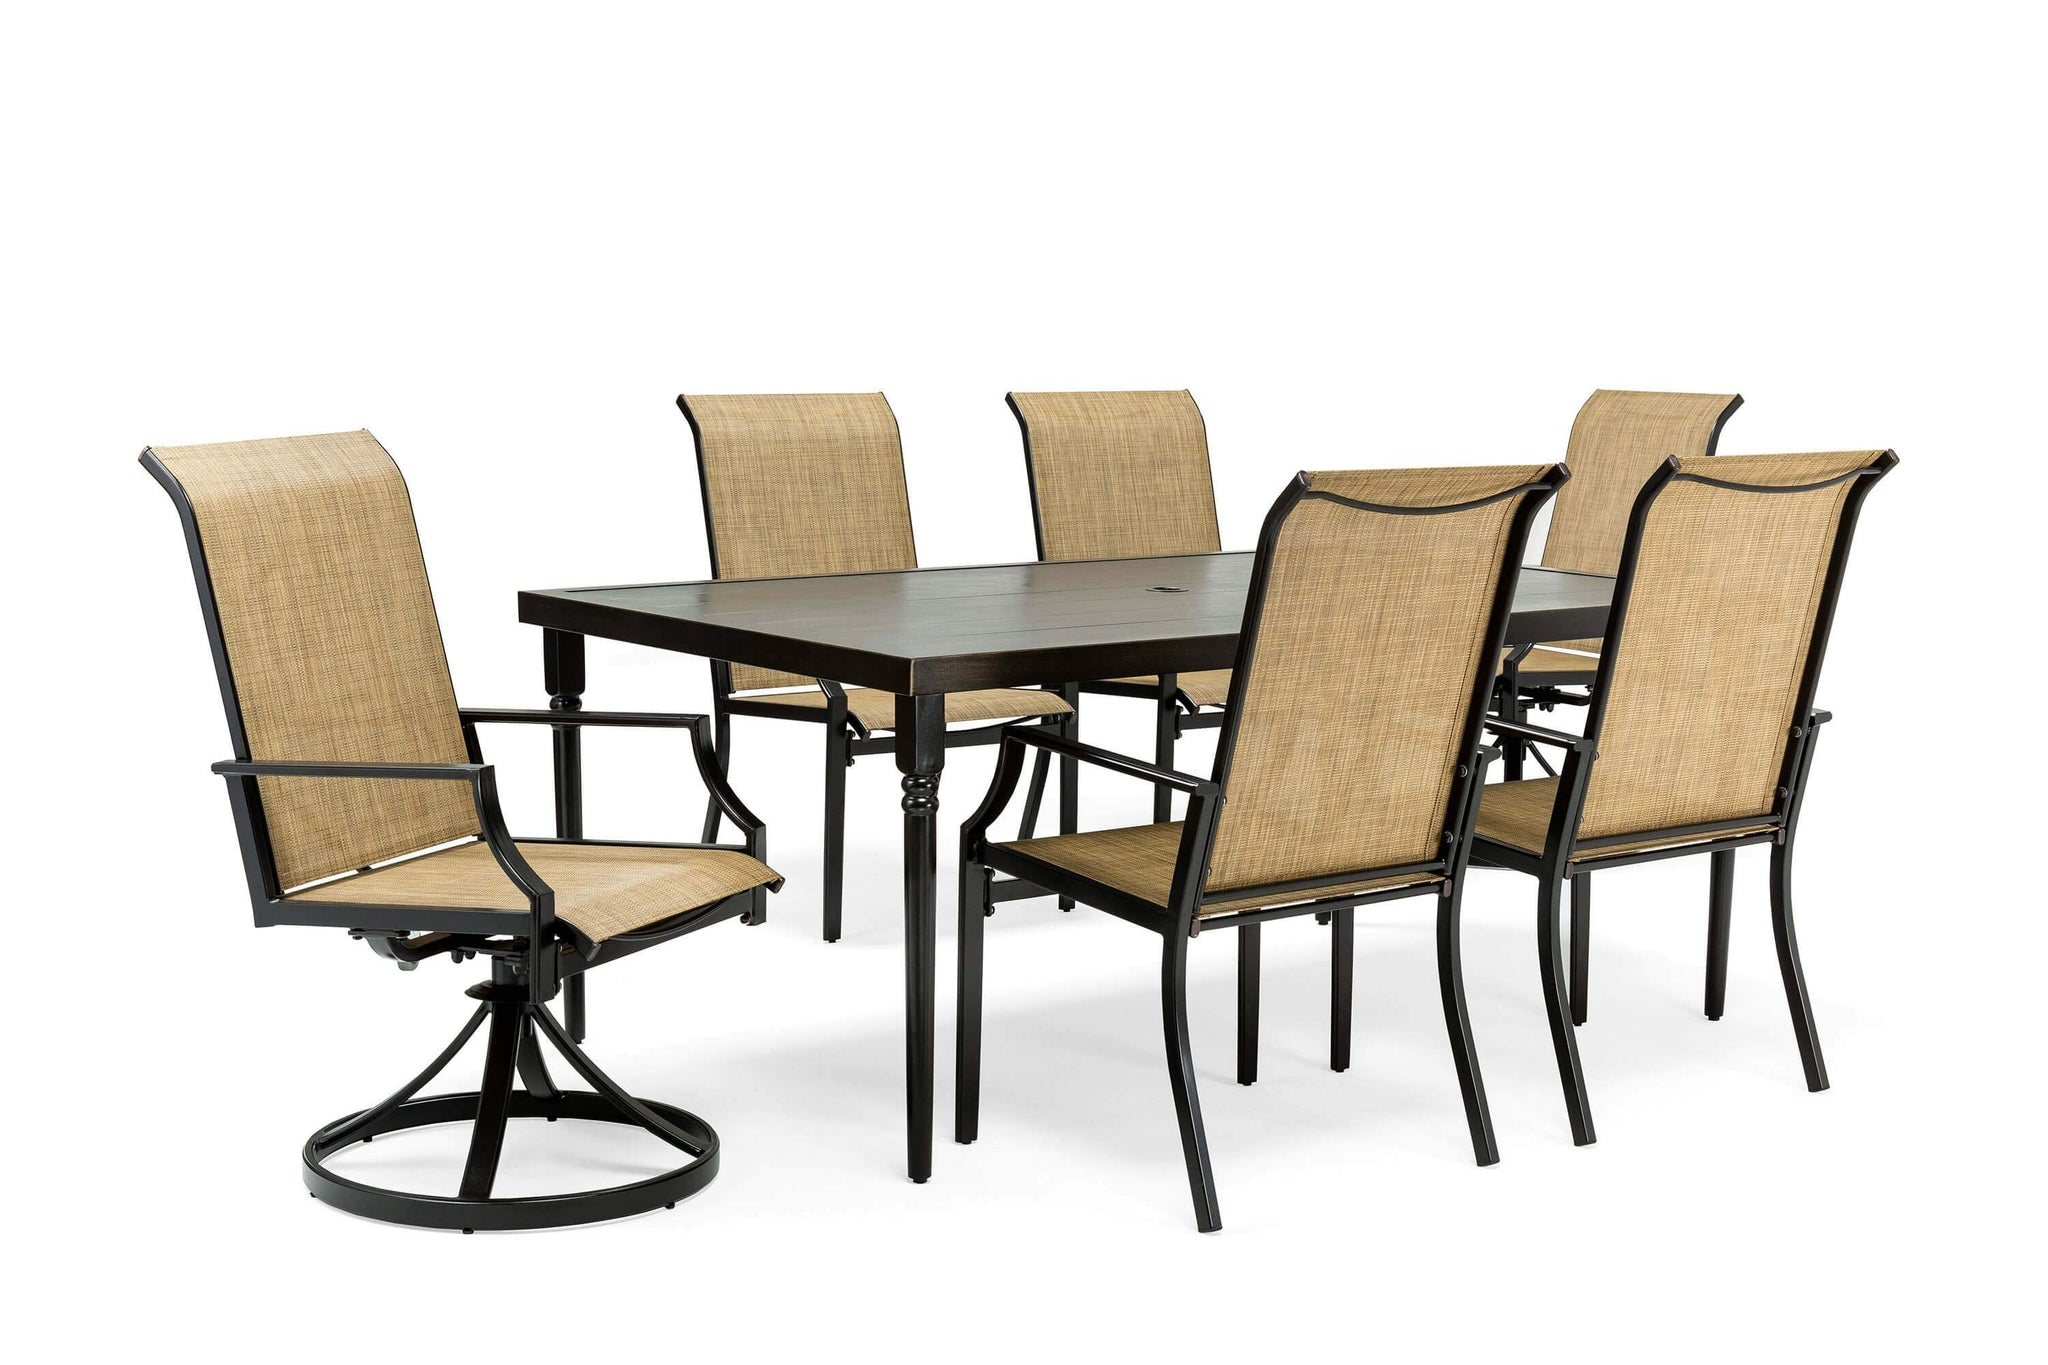 Brilliant Addyson 7Pc Sling Dining Set Rectangular Table 4 Stationary Chairs 2 Swivel Chairs Evergreenethics Interior Chair Design Evergreenethicsorg